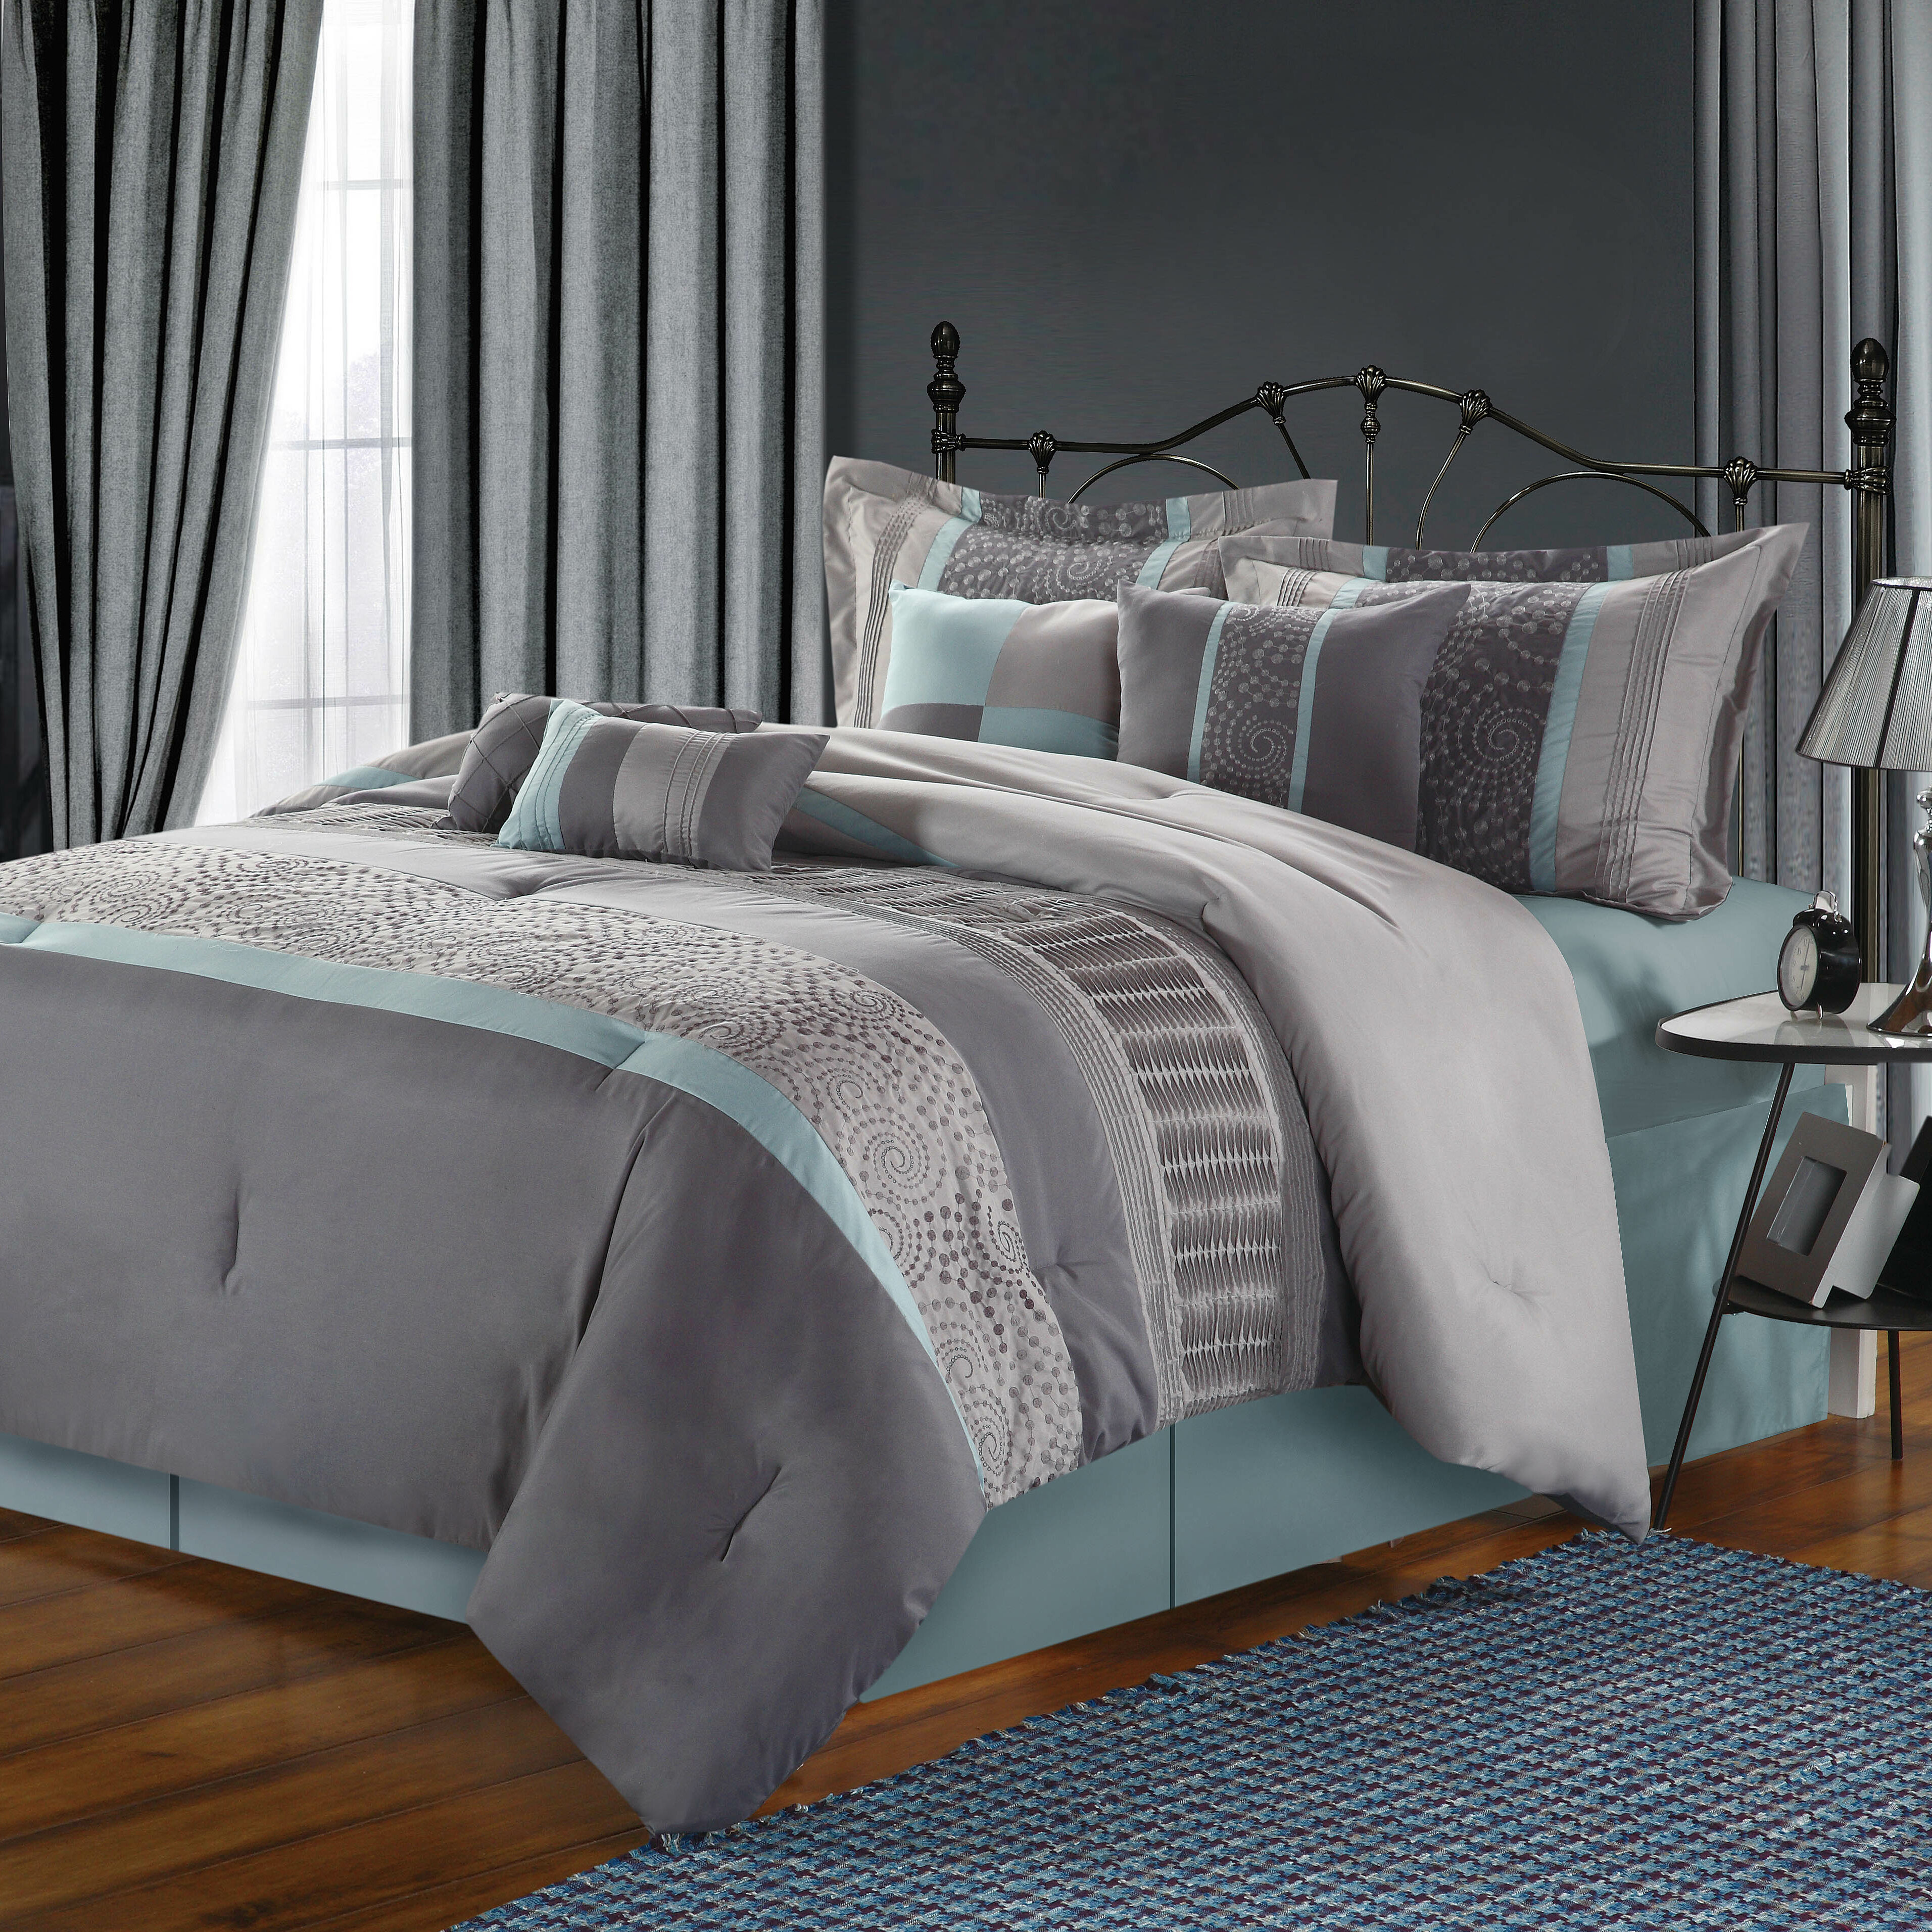 black grey resolution aqua on covers teal cream purple and gray hd light queen comforter pale size gold long full with best navy clearance cute turquois twin turquoise king extra double cover of bedding set linen duvets solid duvet bedroom white sets cool